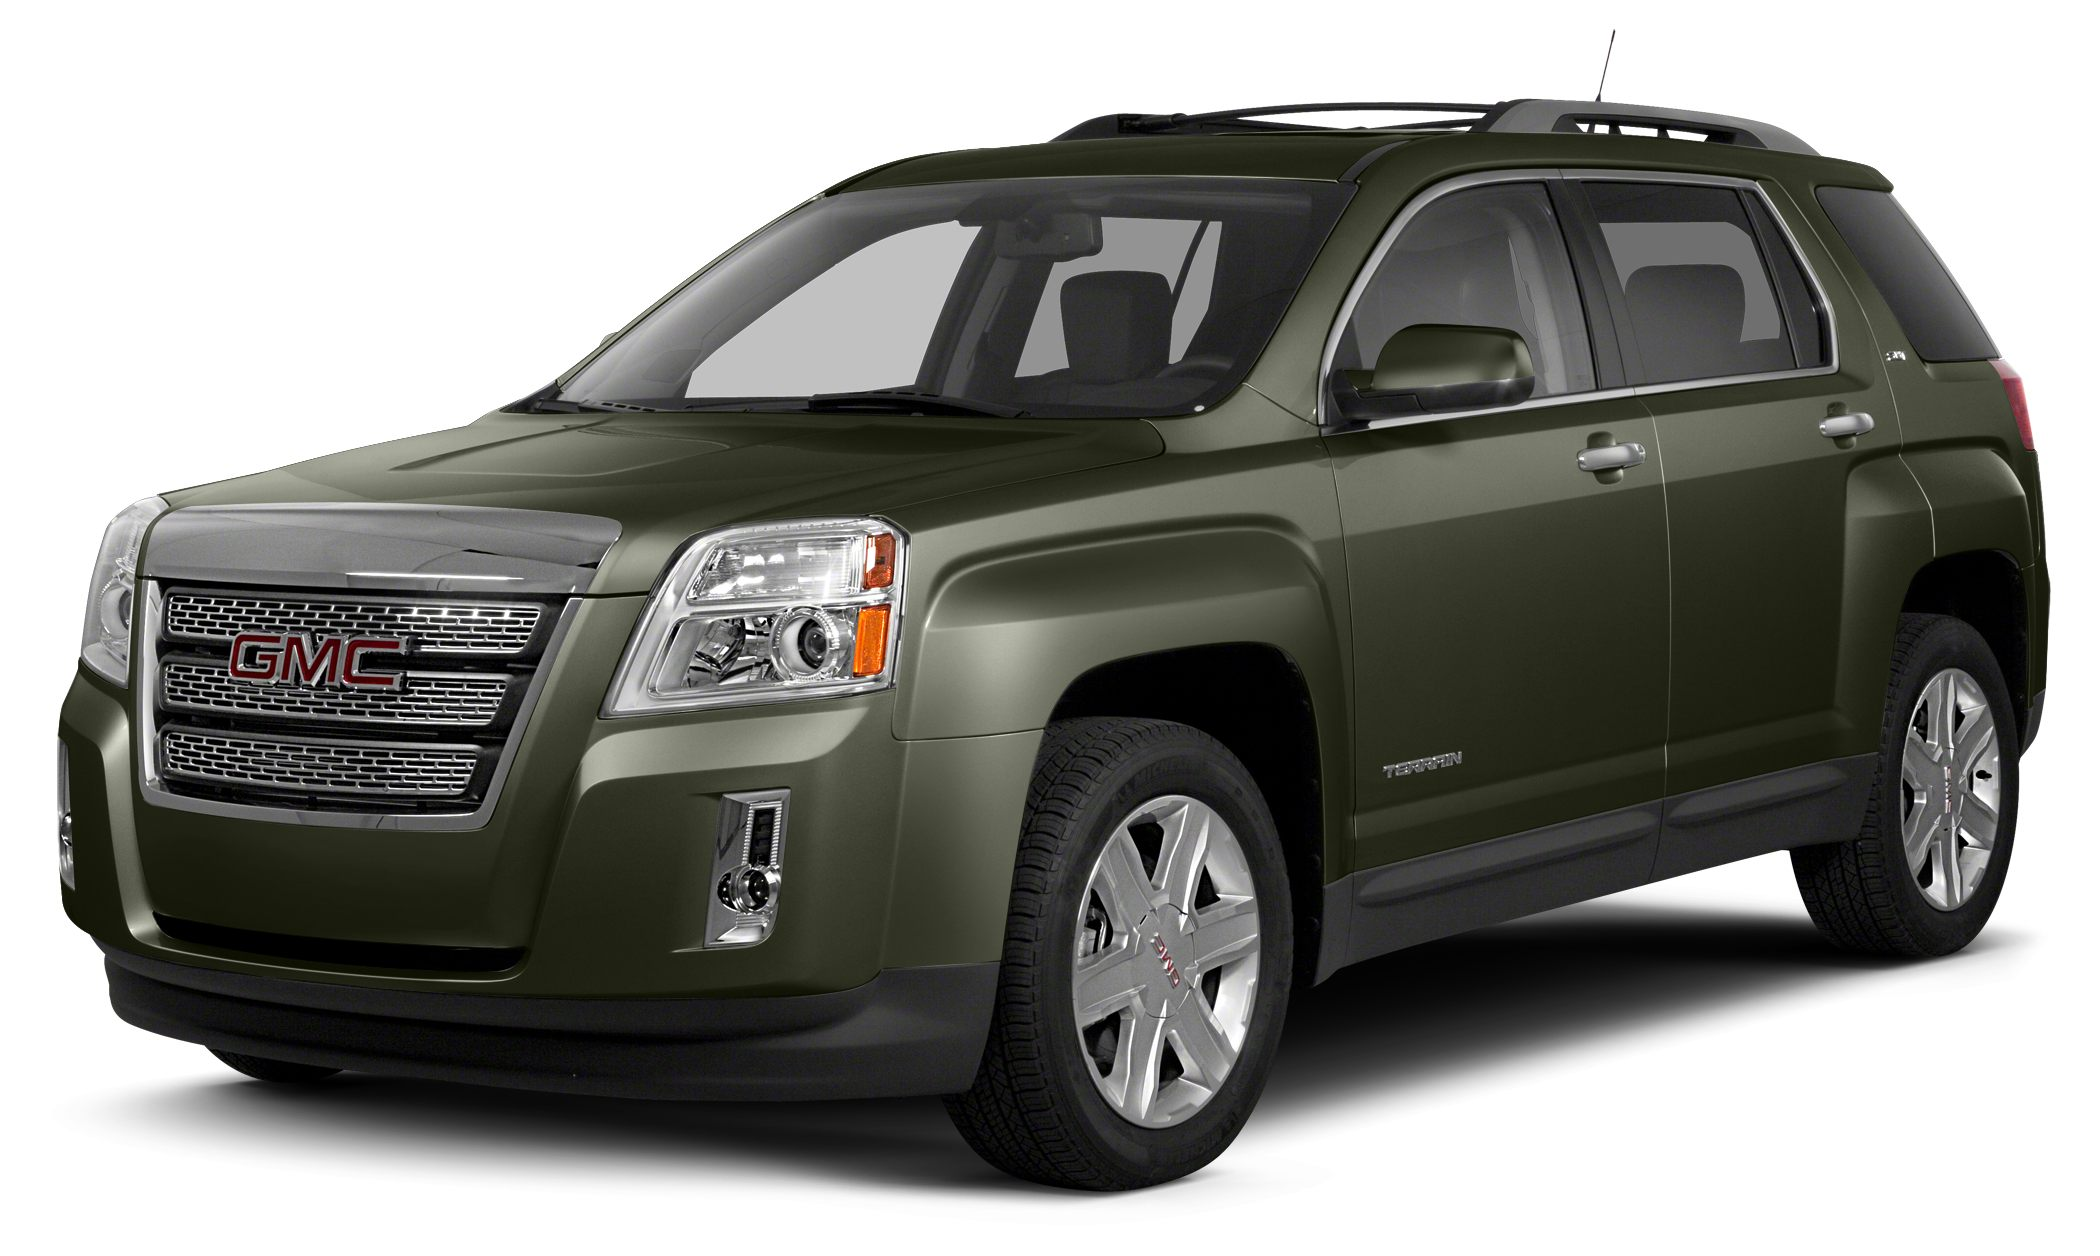 2013 GMC Terrain SLE-1 Excellent Condition GREAT MILES 24240 EPA 29 MPG Hwy20 MPG City Satelli